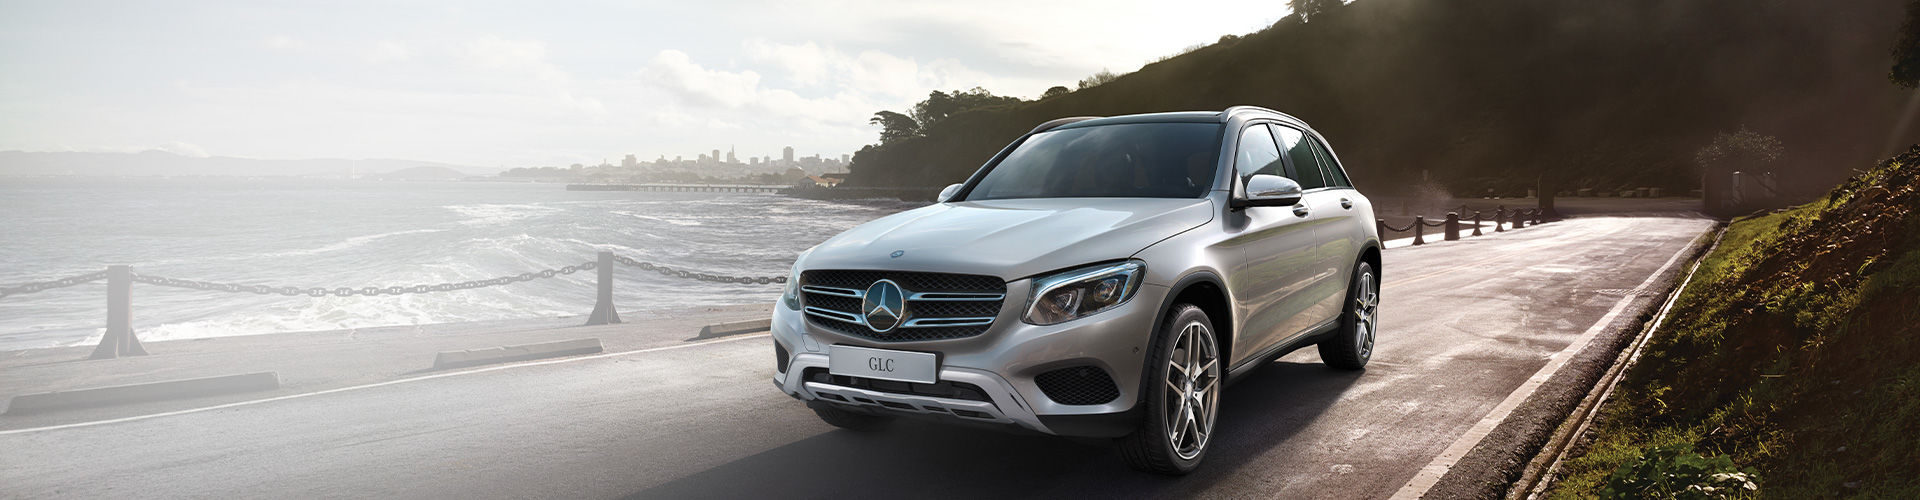 The new <br>2019 GLC